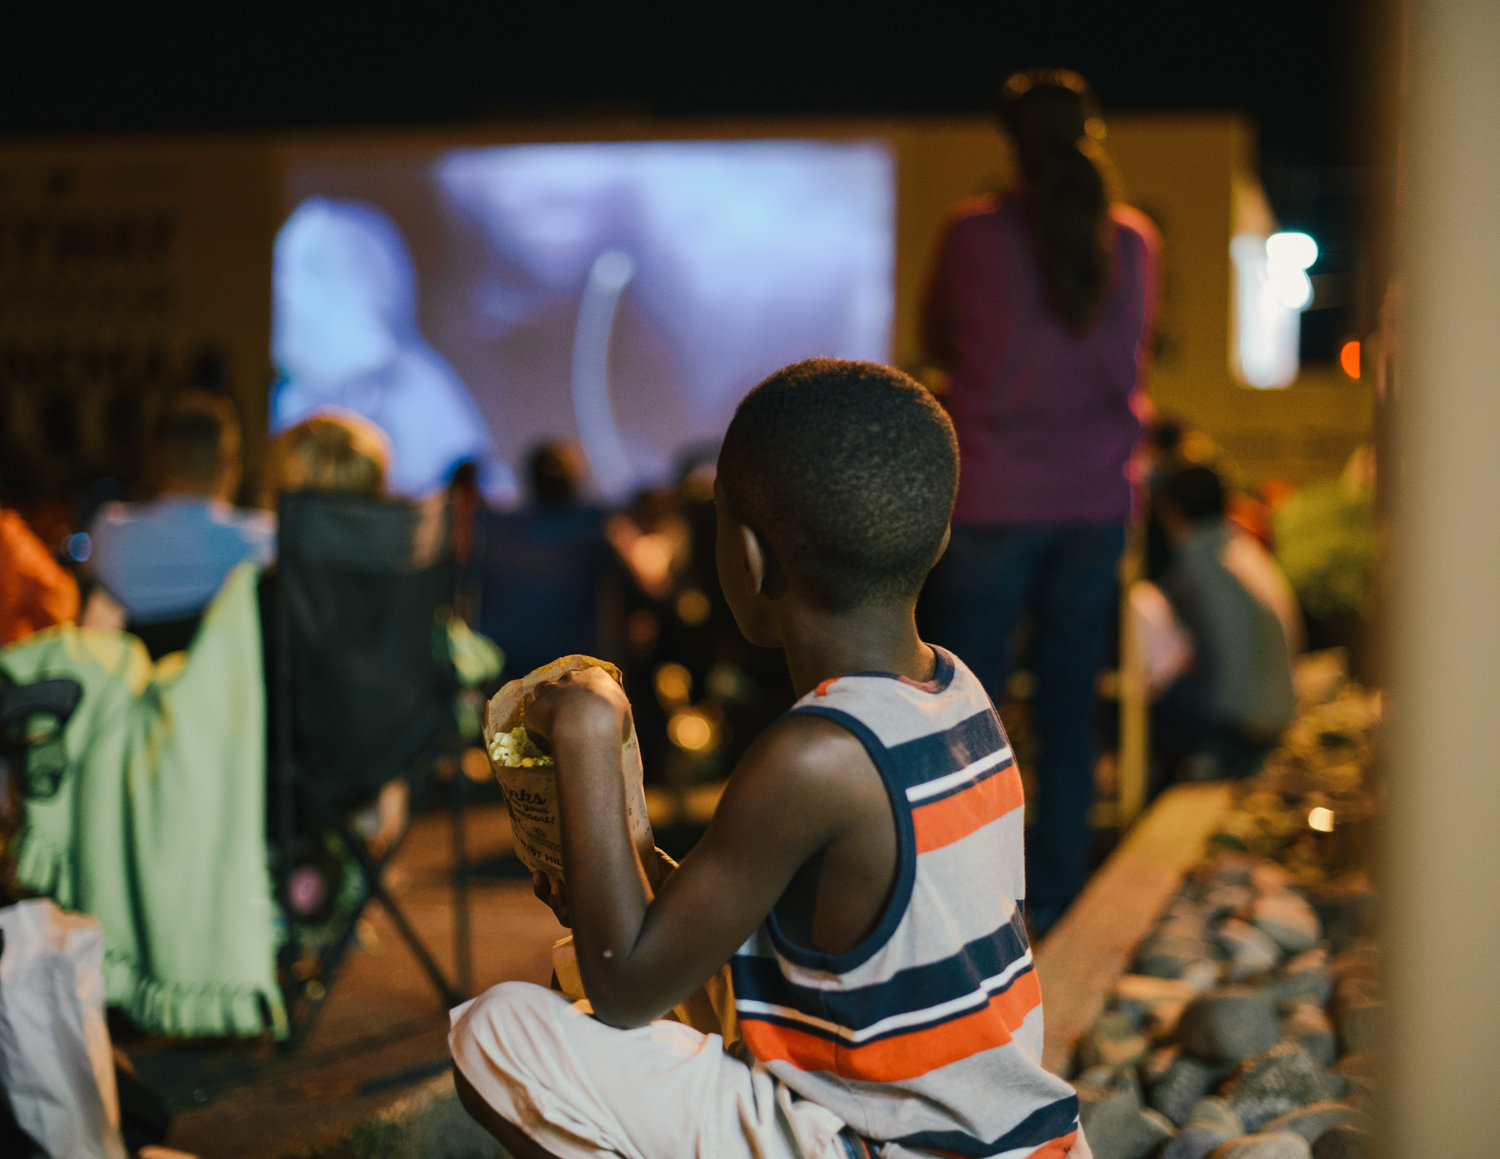 SKYWAY OUTDOOR THEATER -